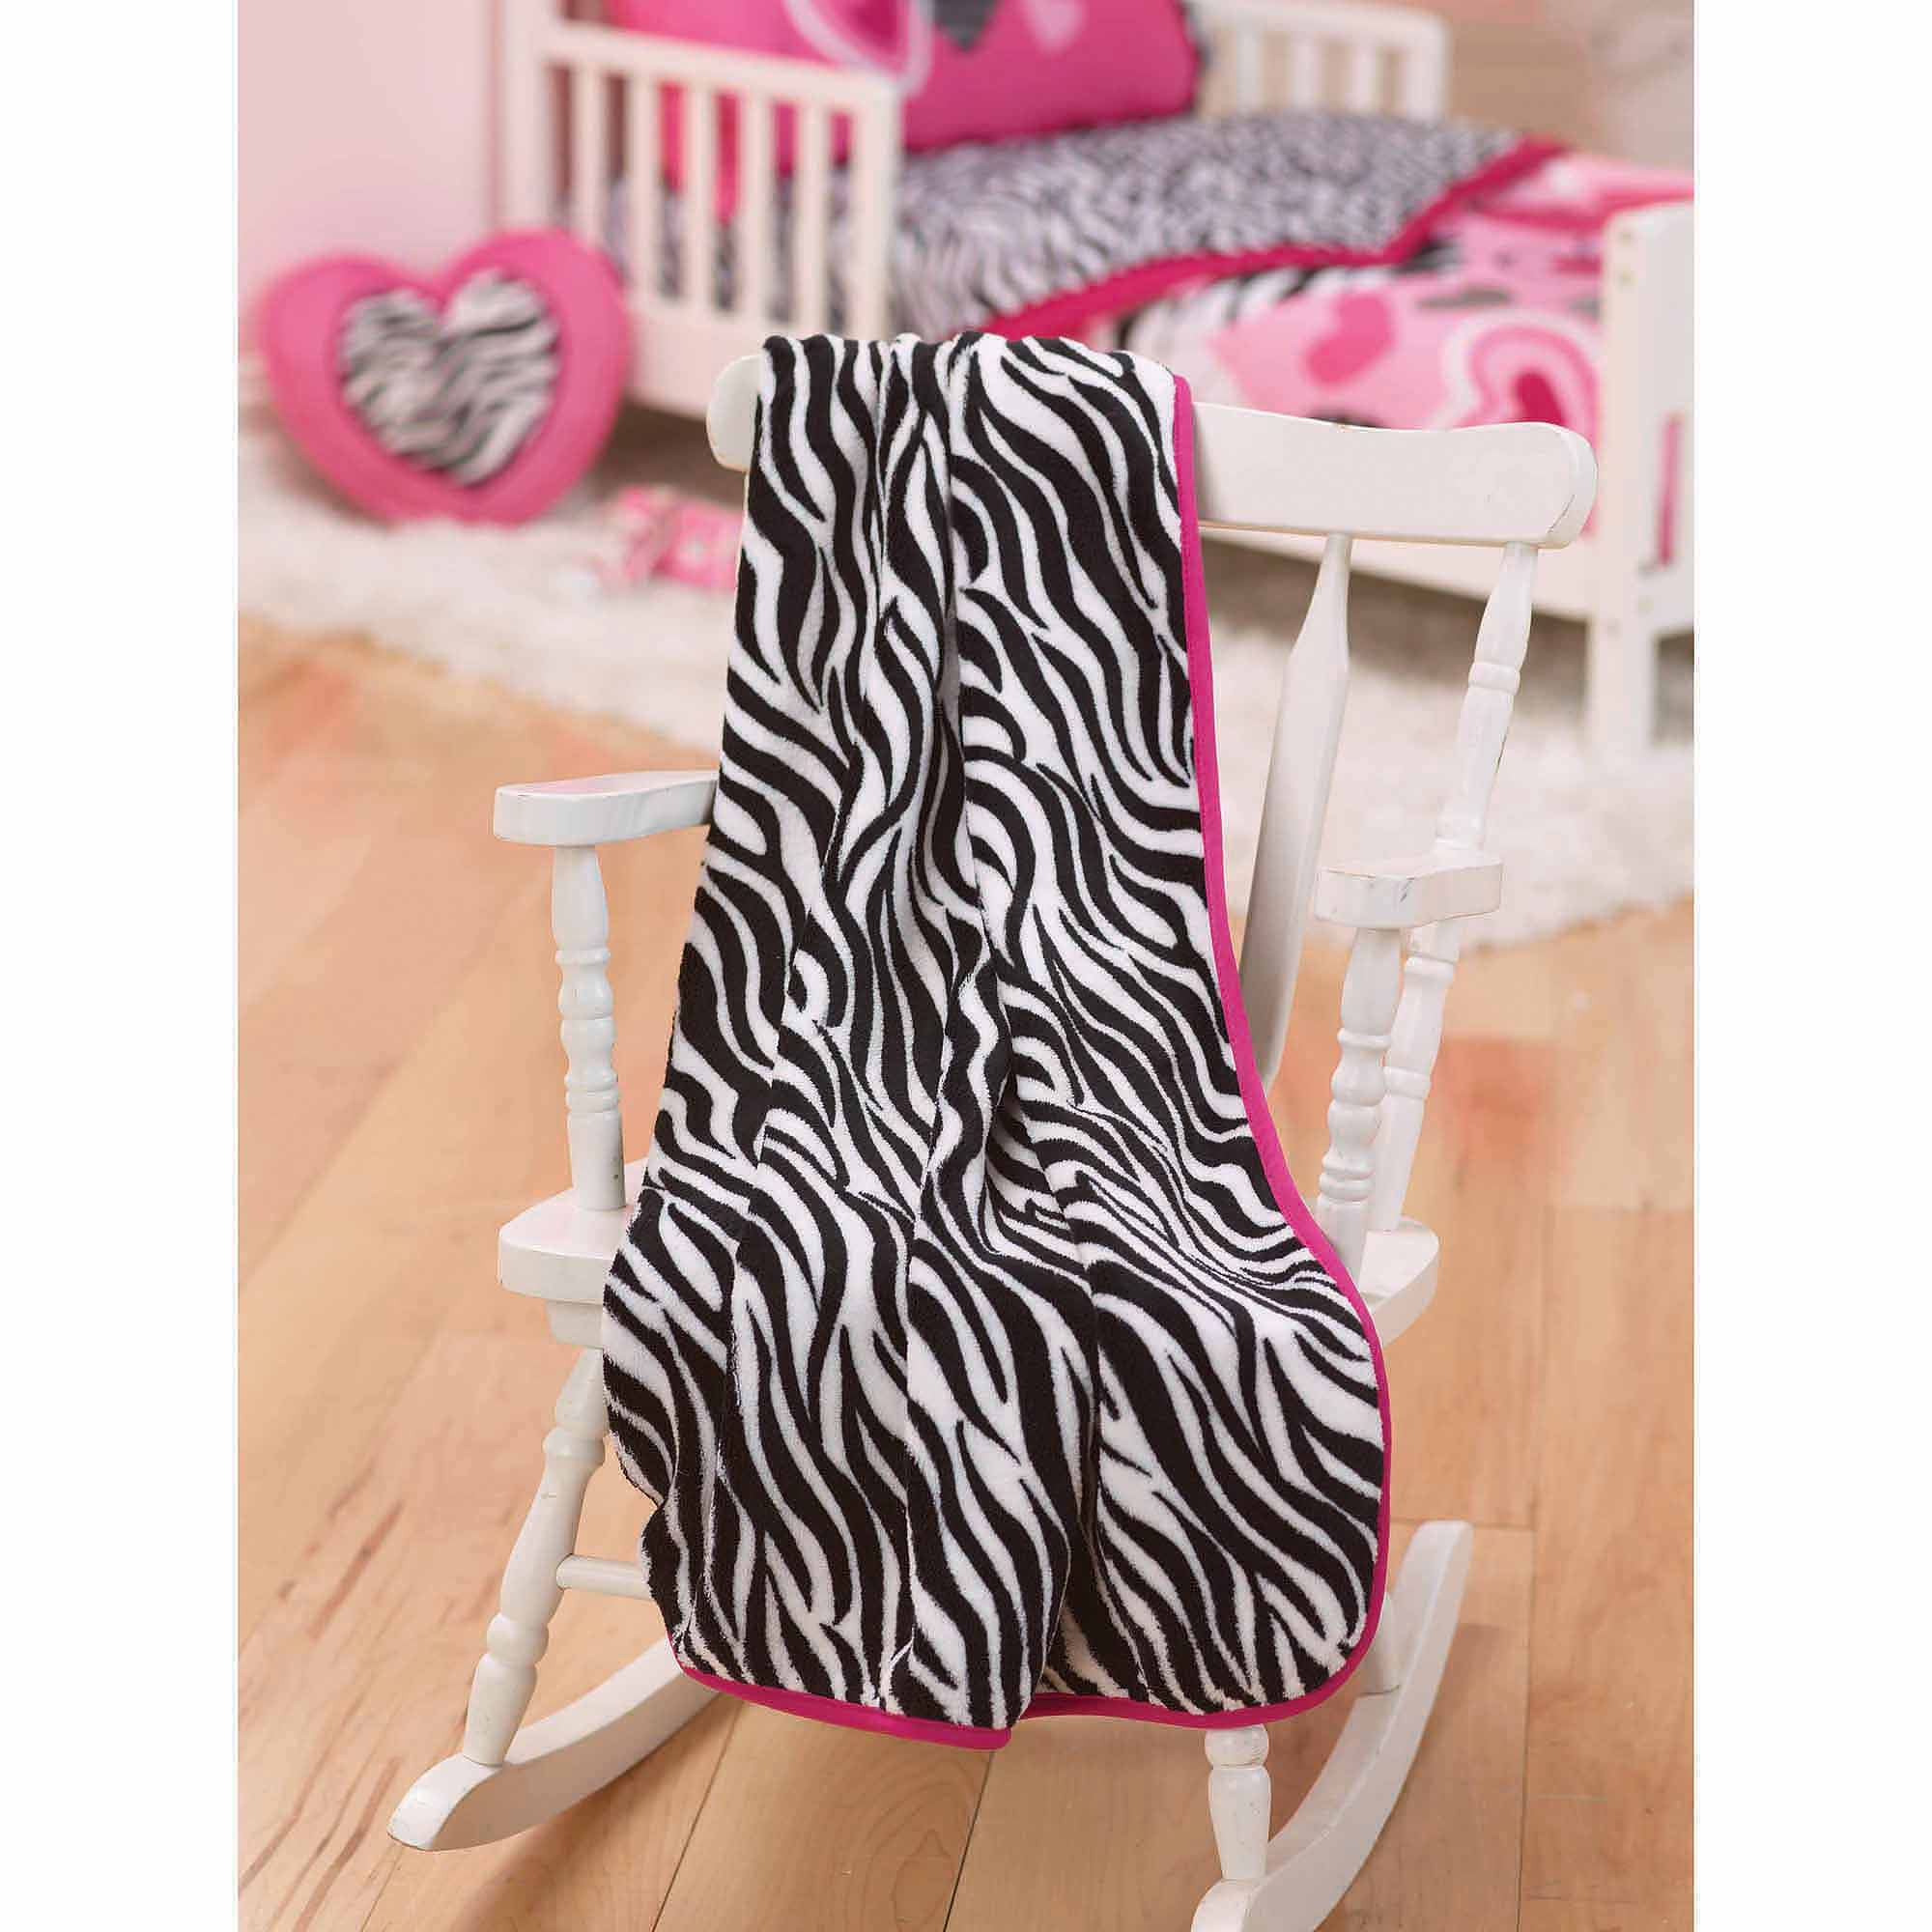 Garanimals Zebra Hearts Toddler Throw Blanket